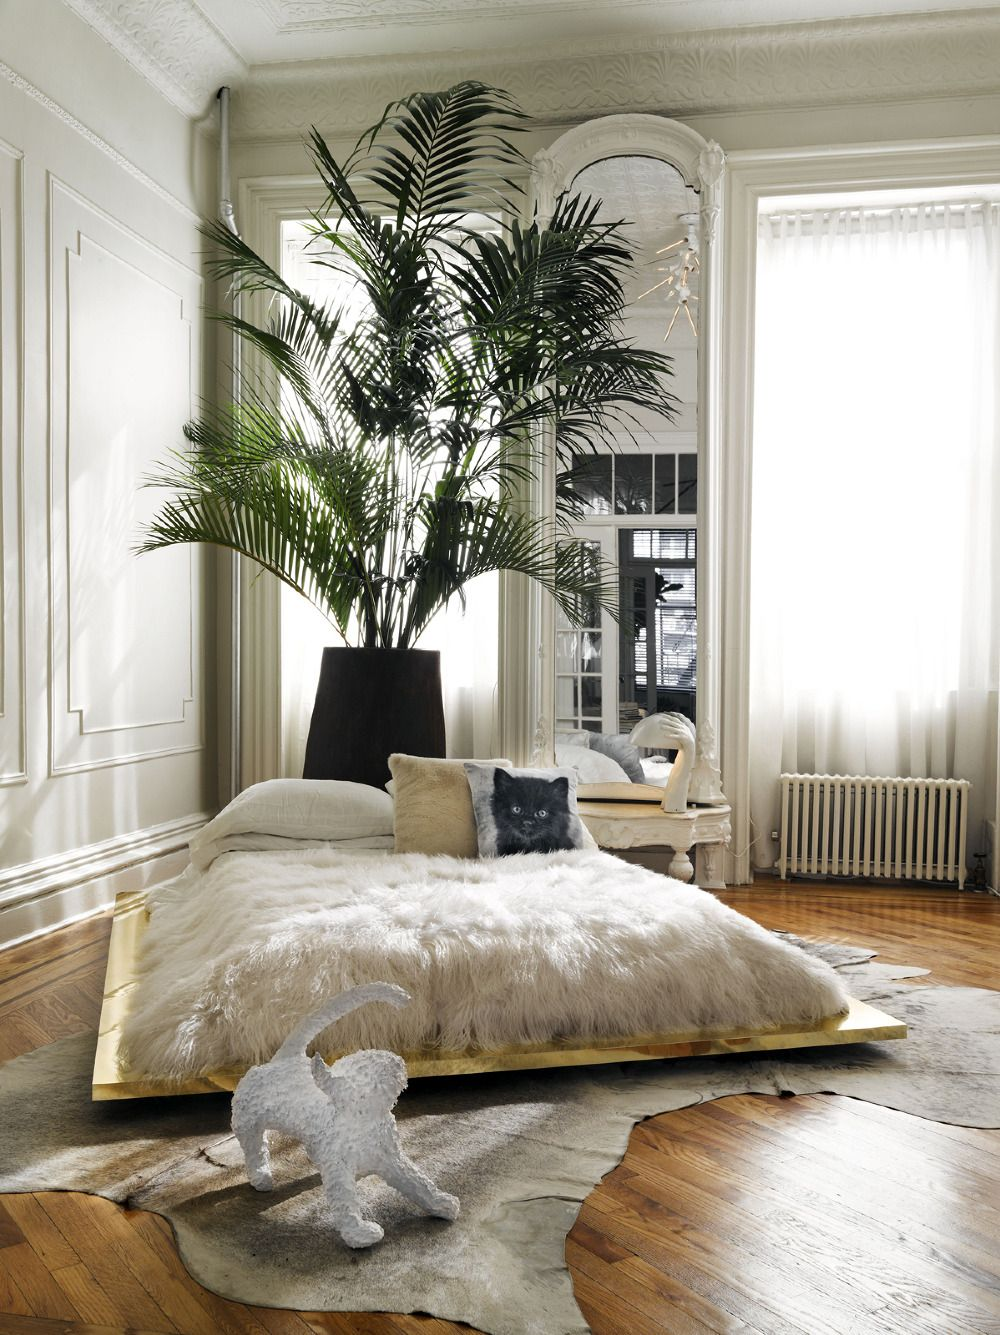 BROOKLYN BROWNSTONE   beautiful glamorous bedroom! Look at the white fur throw and the gold bed